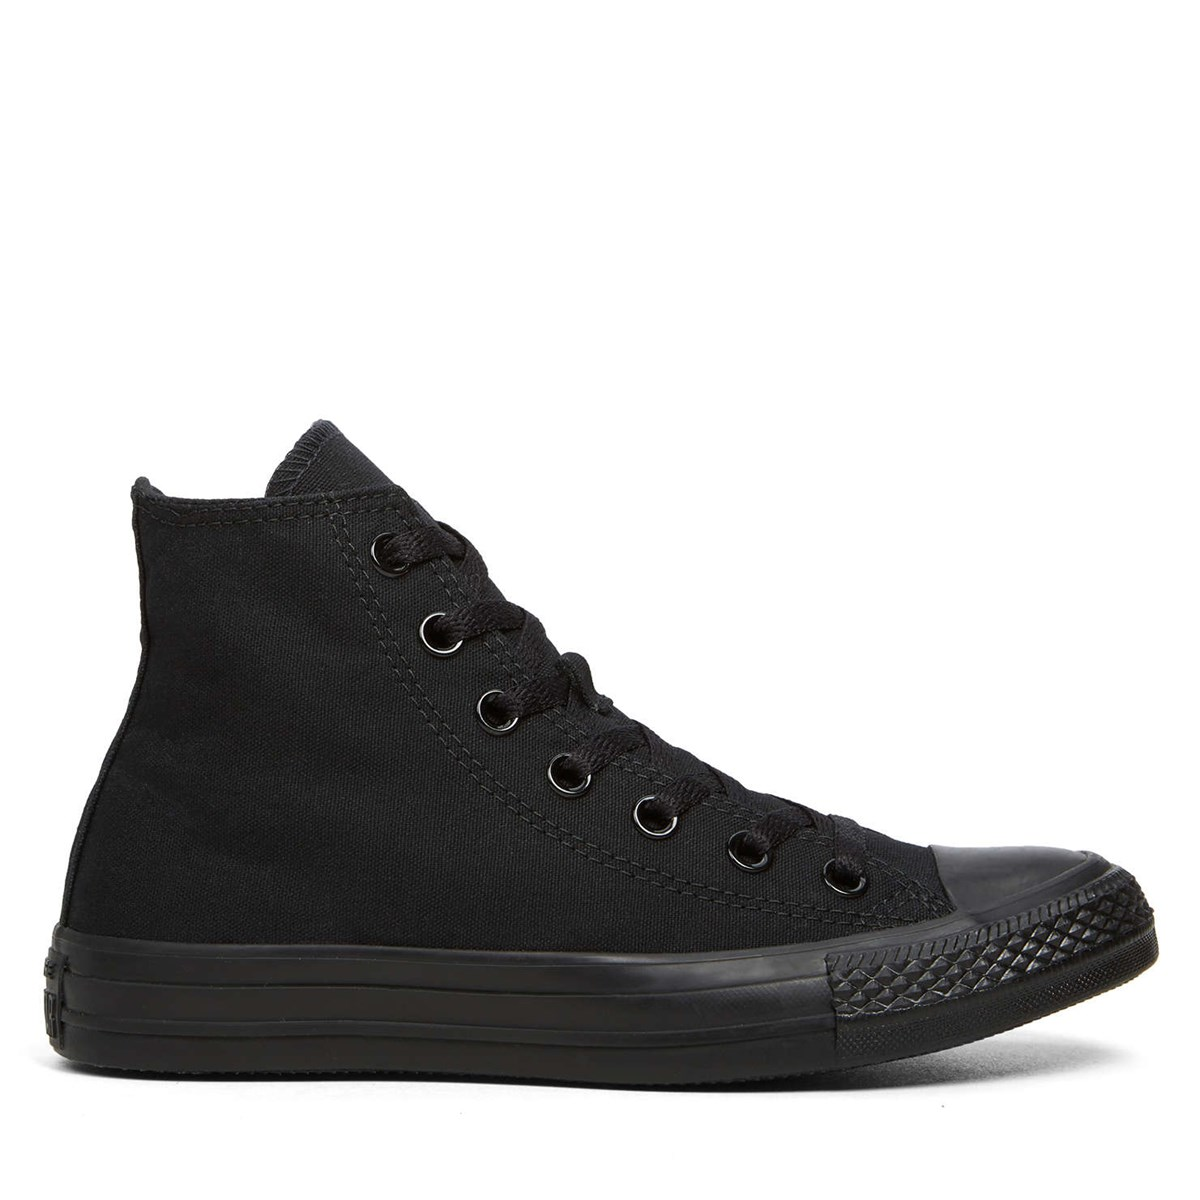 Women's  Chuck Taylor All Star Mono High Top Sneakers in Black